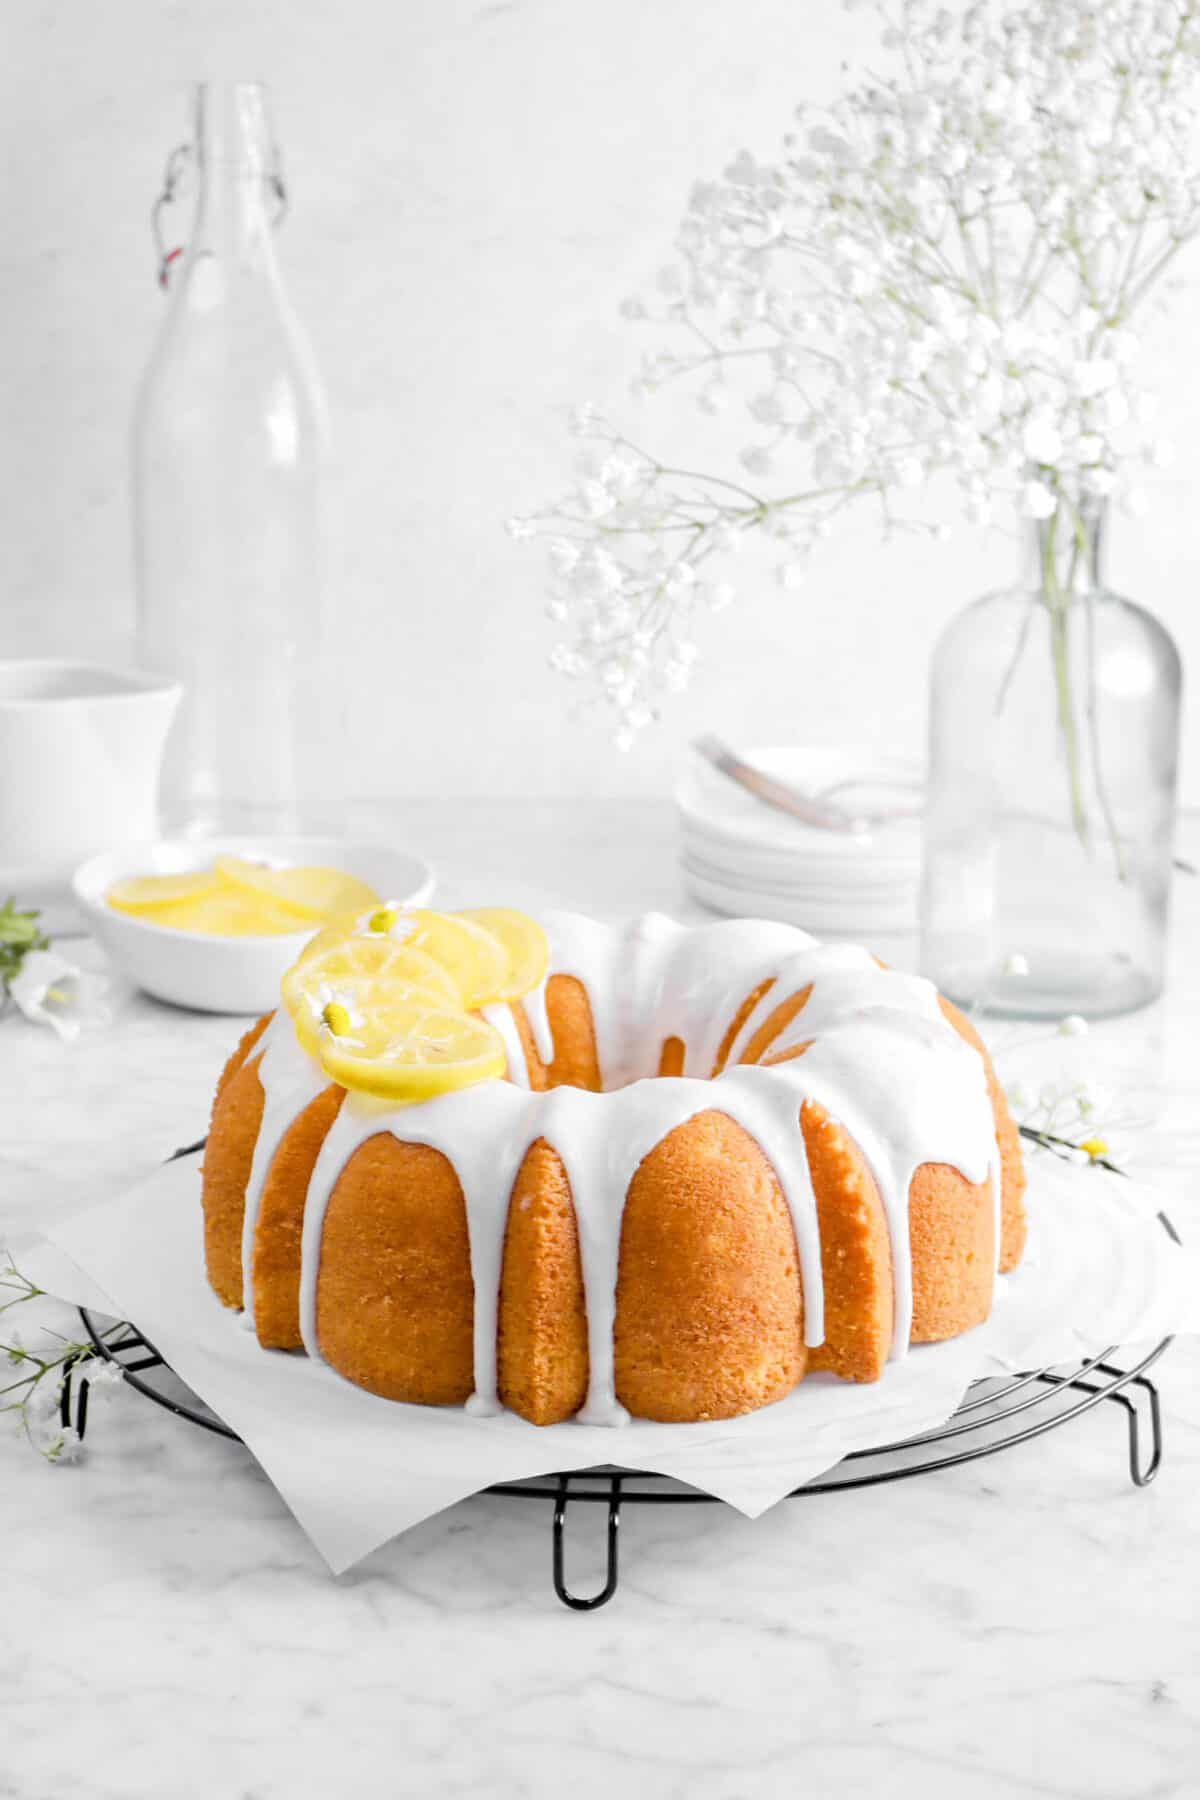 pound bundt cake with glaze, flowers, candied lemon, and plates behind